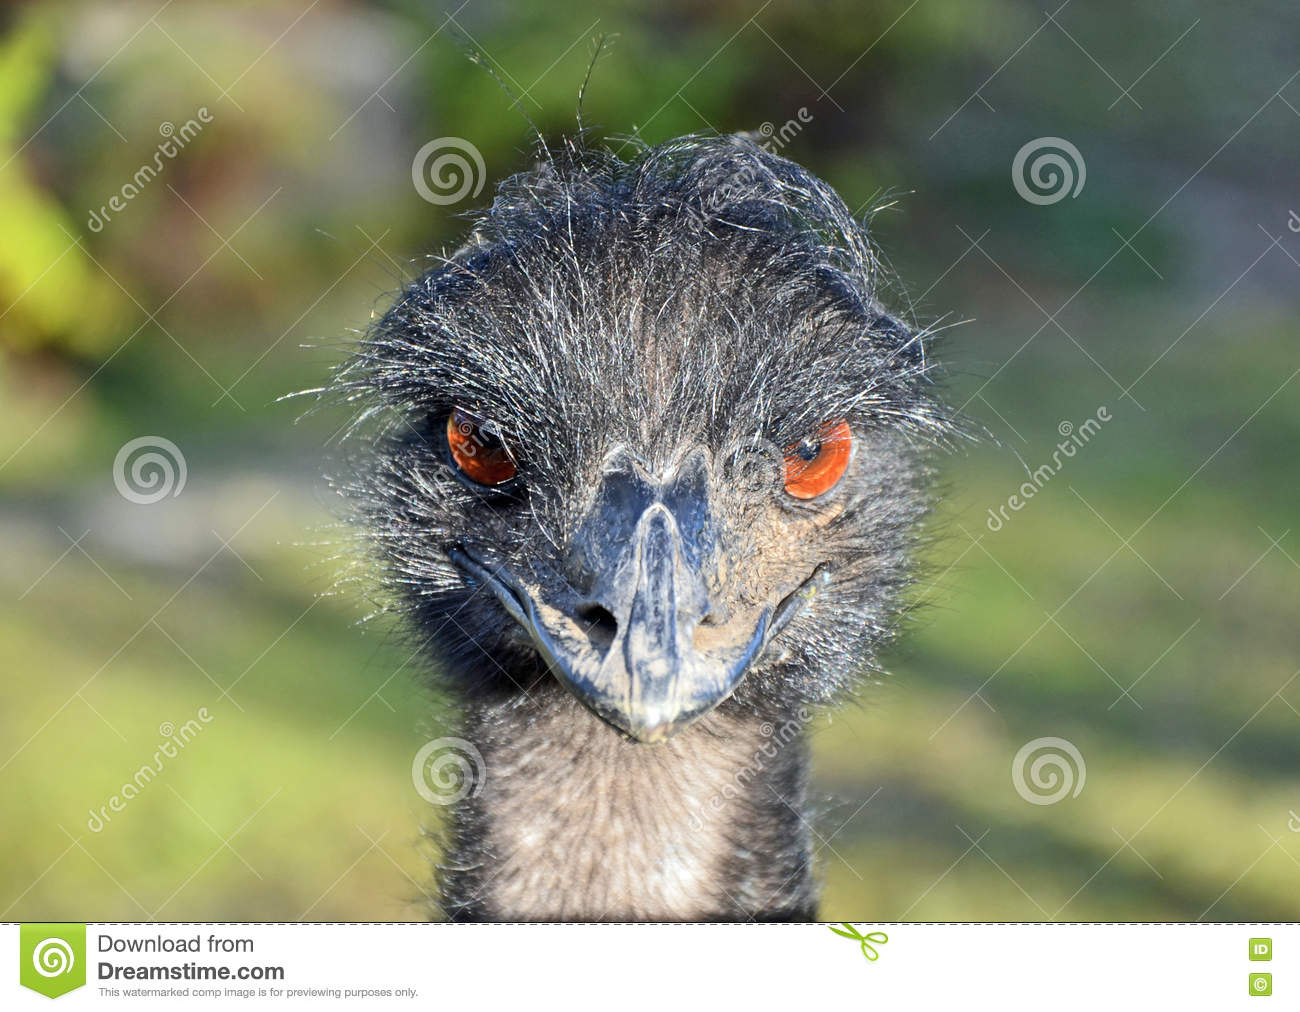 curious angry bird emu royalty free stock image cartoondealer com 71349154 angry birds clip art black and white angry birds clip art for coloring